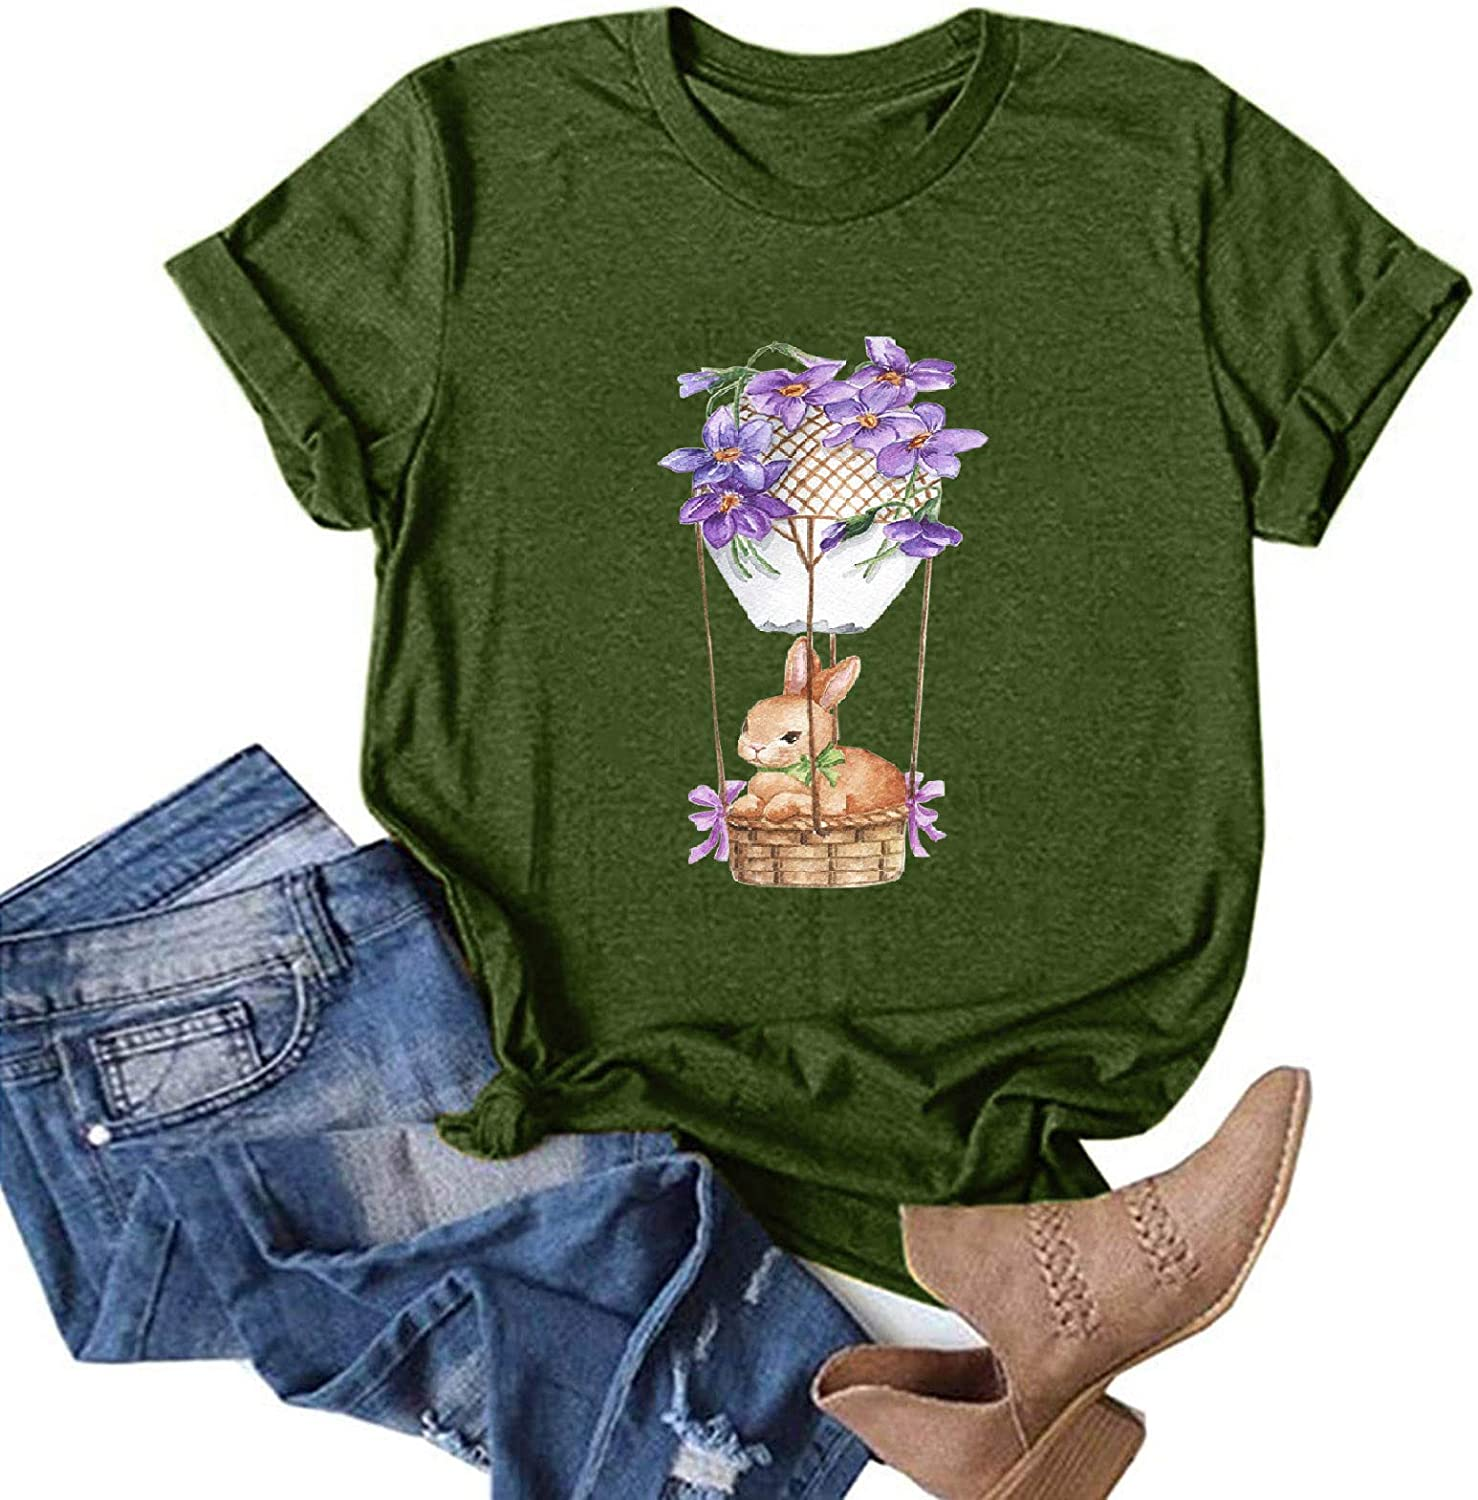 BEIBEIA Women Easter Bunny Printing Short Tee O-Neck Free Shipping New Max 48% OFF T-Sh Sleeve